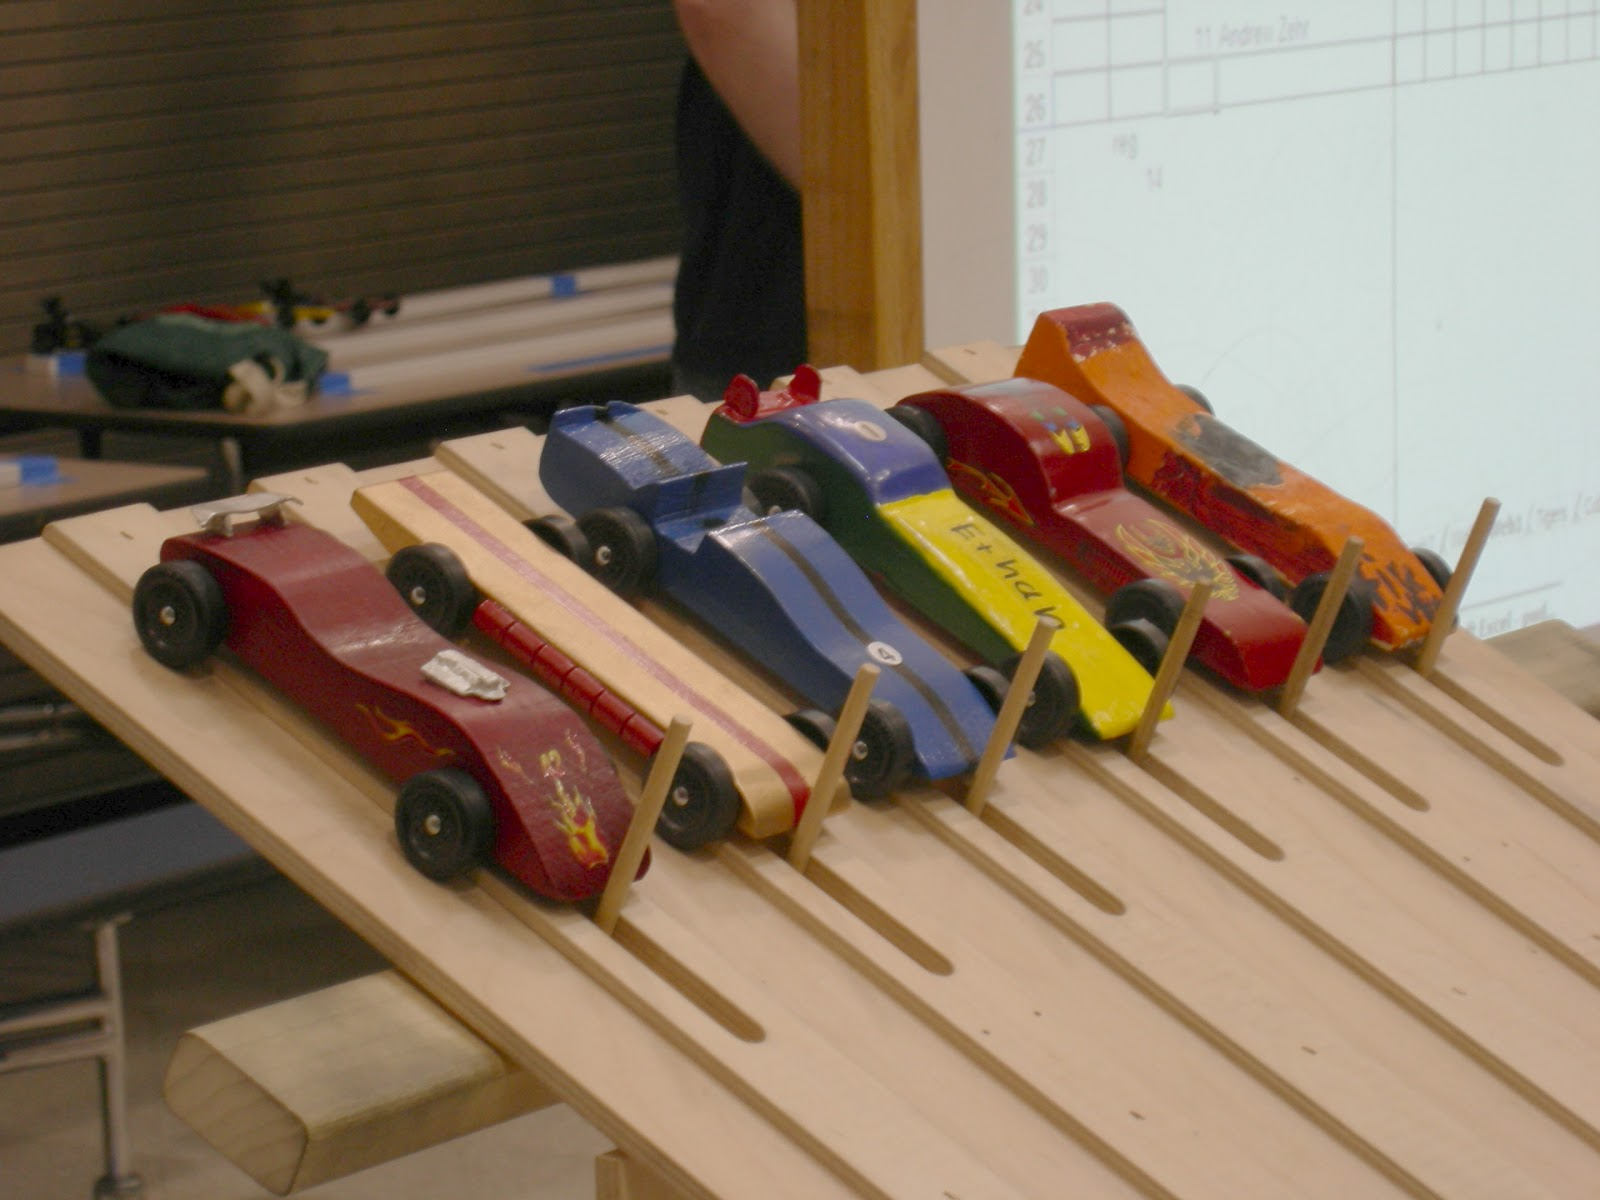 Brodi ashton what do copyedits and the pinewood derby